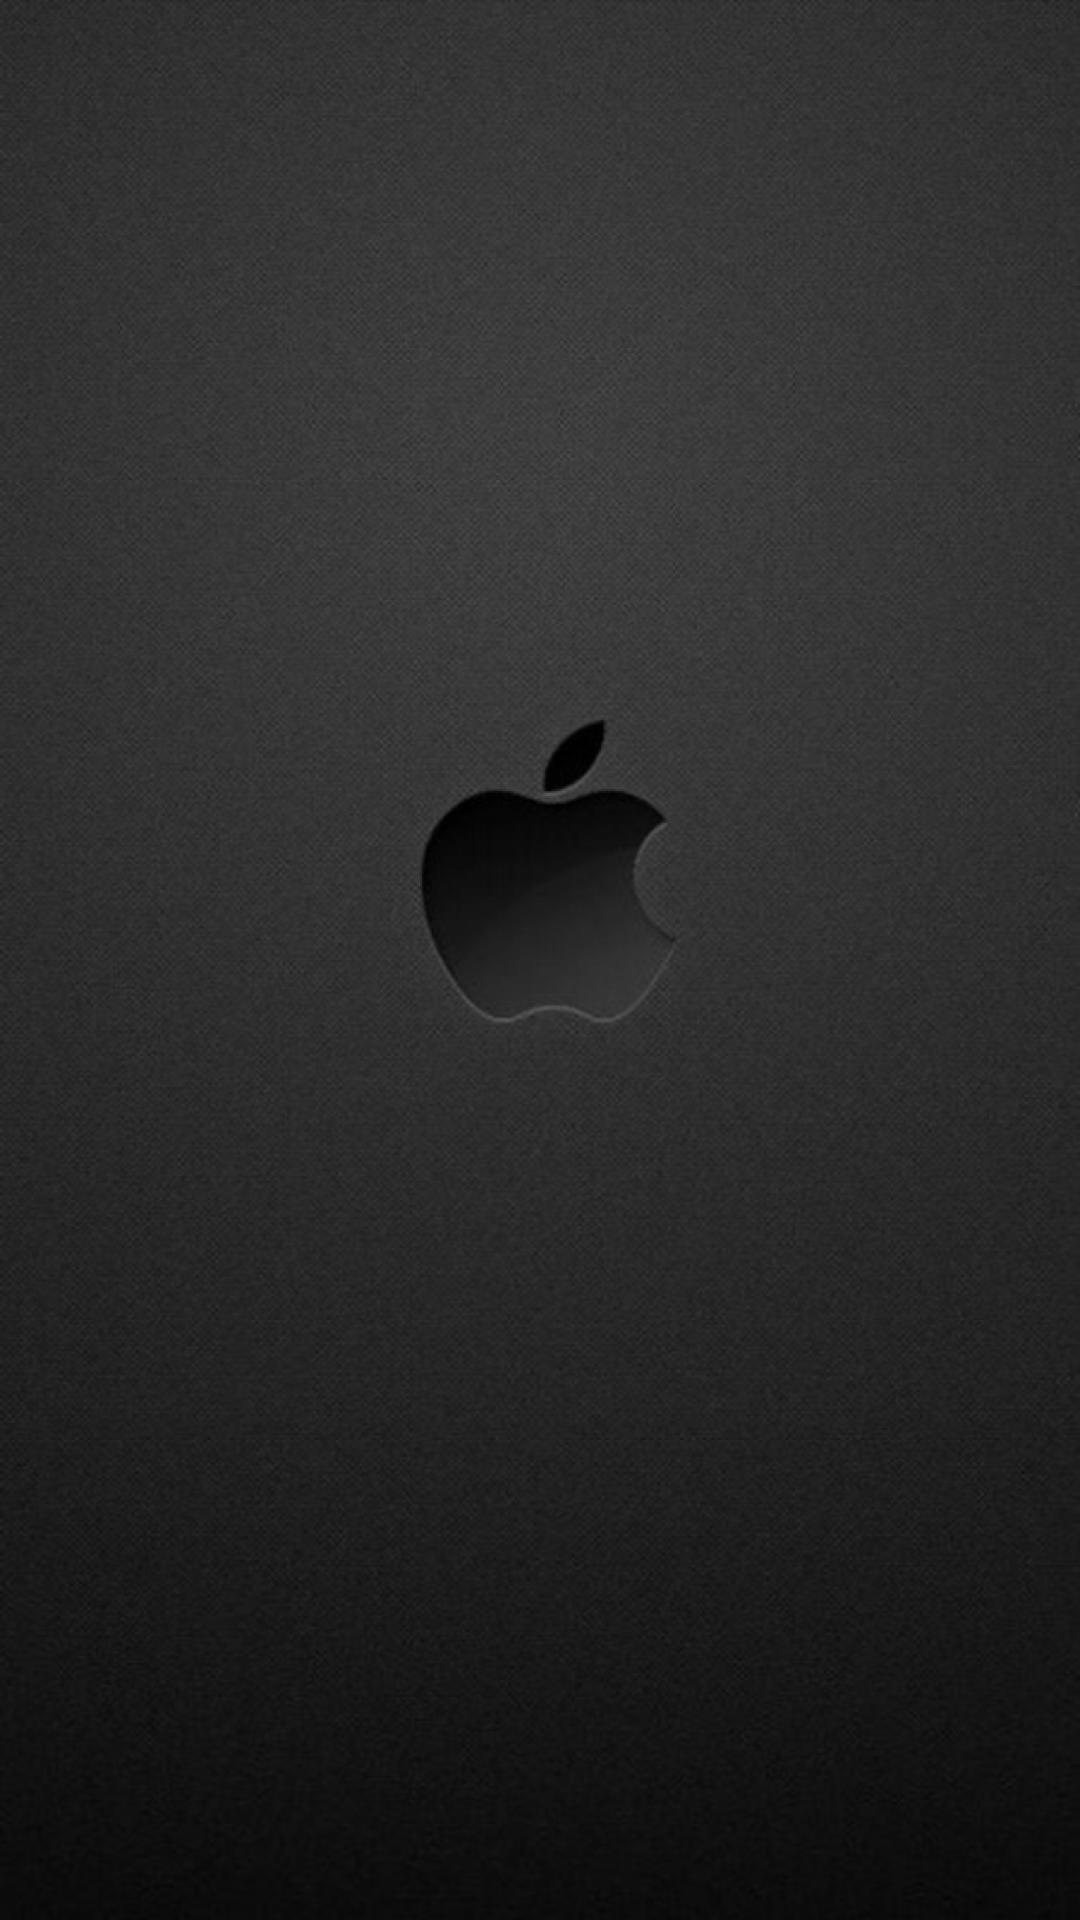 50 Hd Retina Wallpaper Iphone 6 On Wallpapersafari